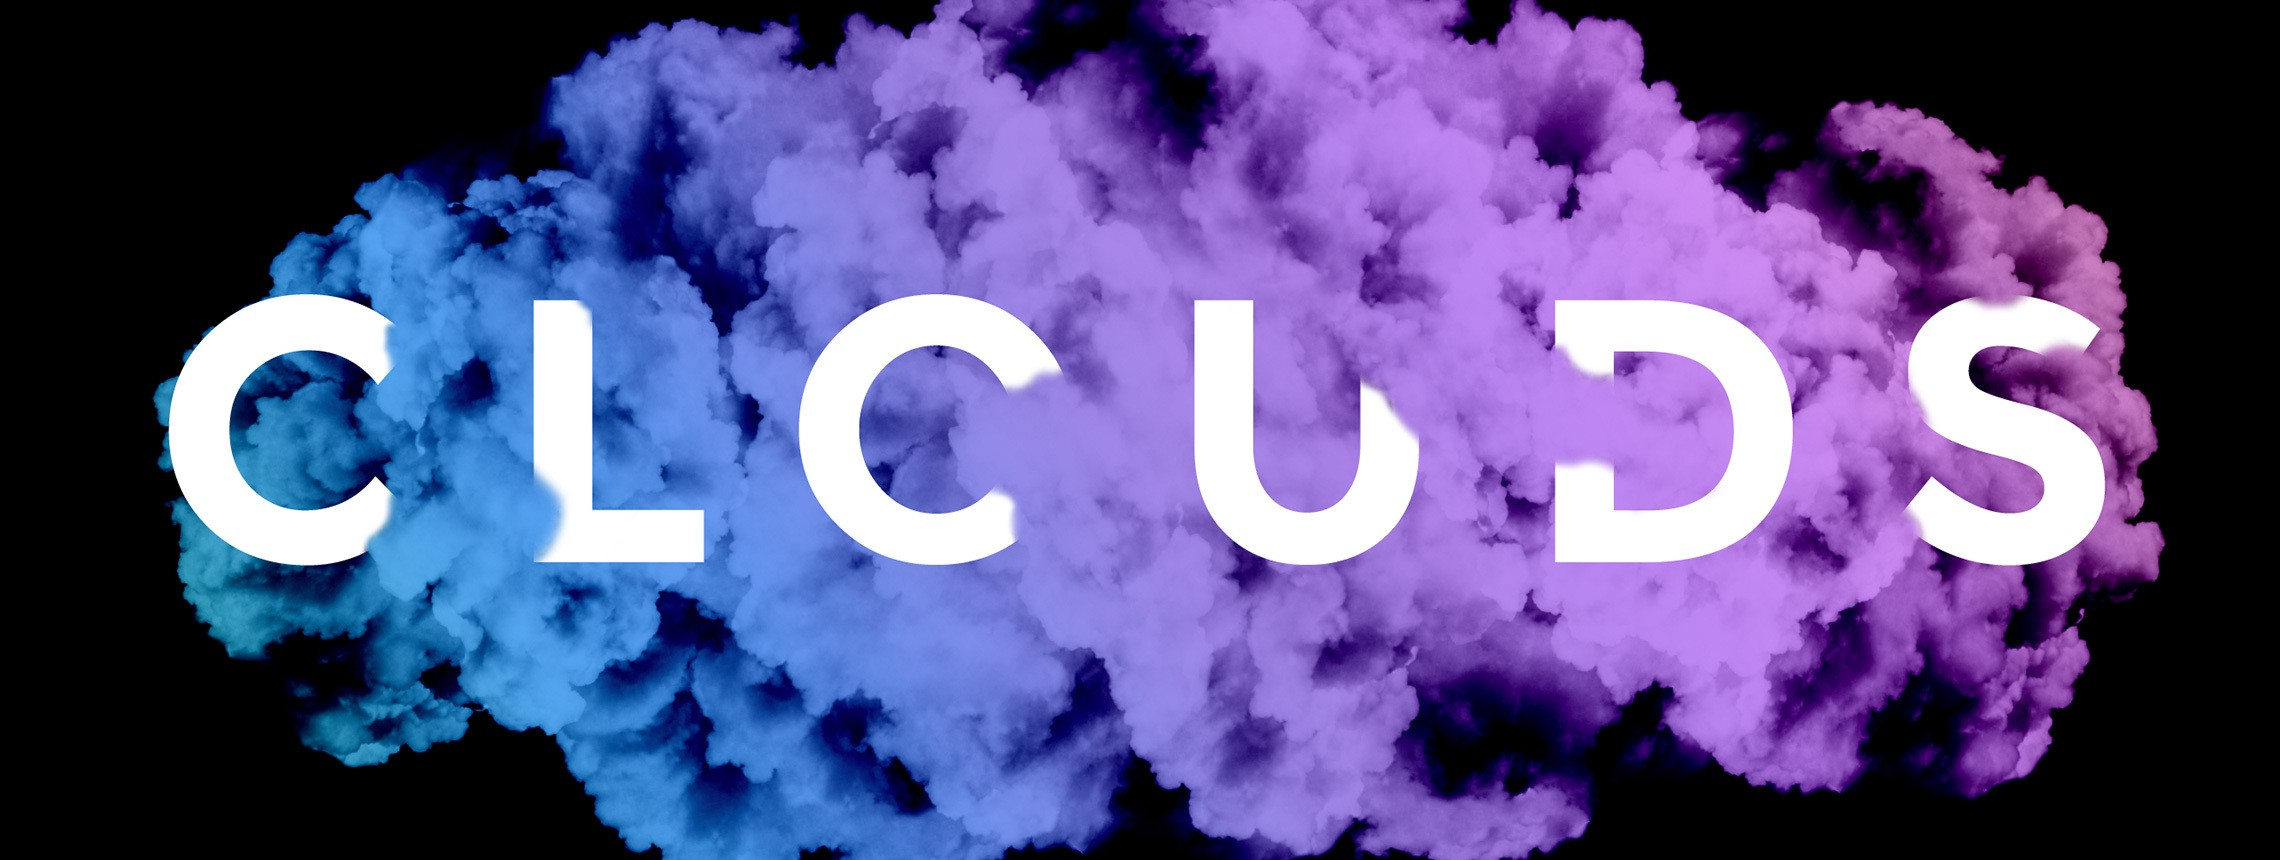 Create a Colorful Smoke Cloud Effect in Photoshop